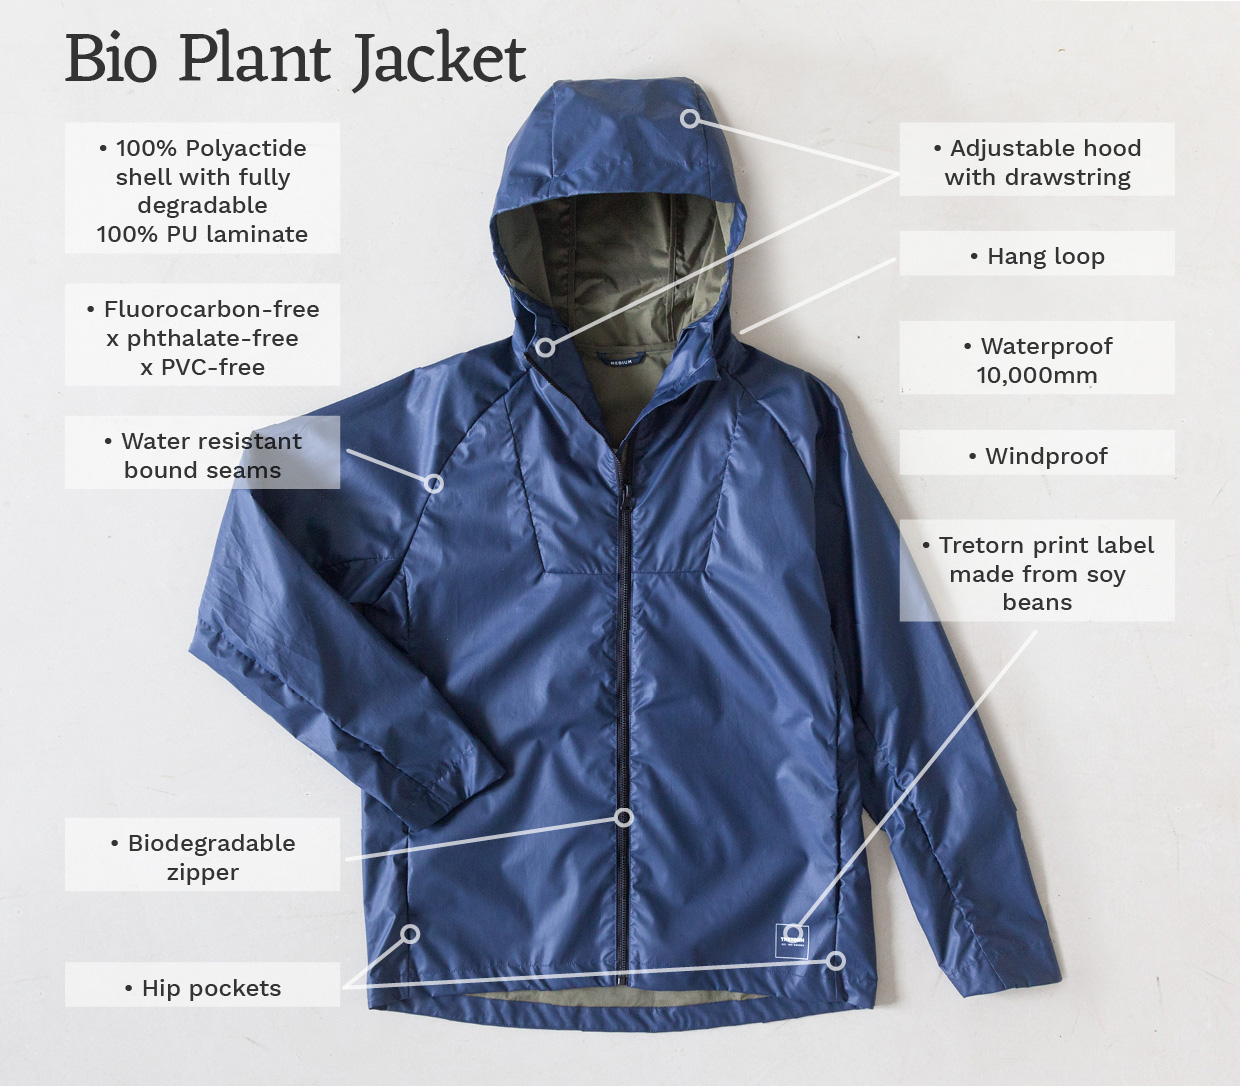 Tretorn Bio Jacket with annotations